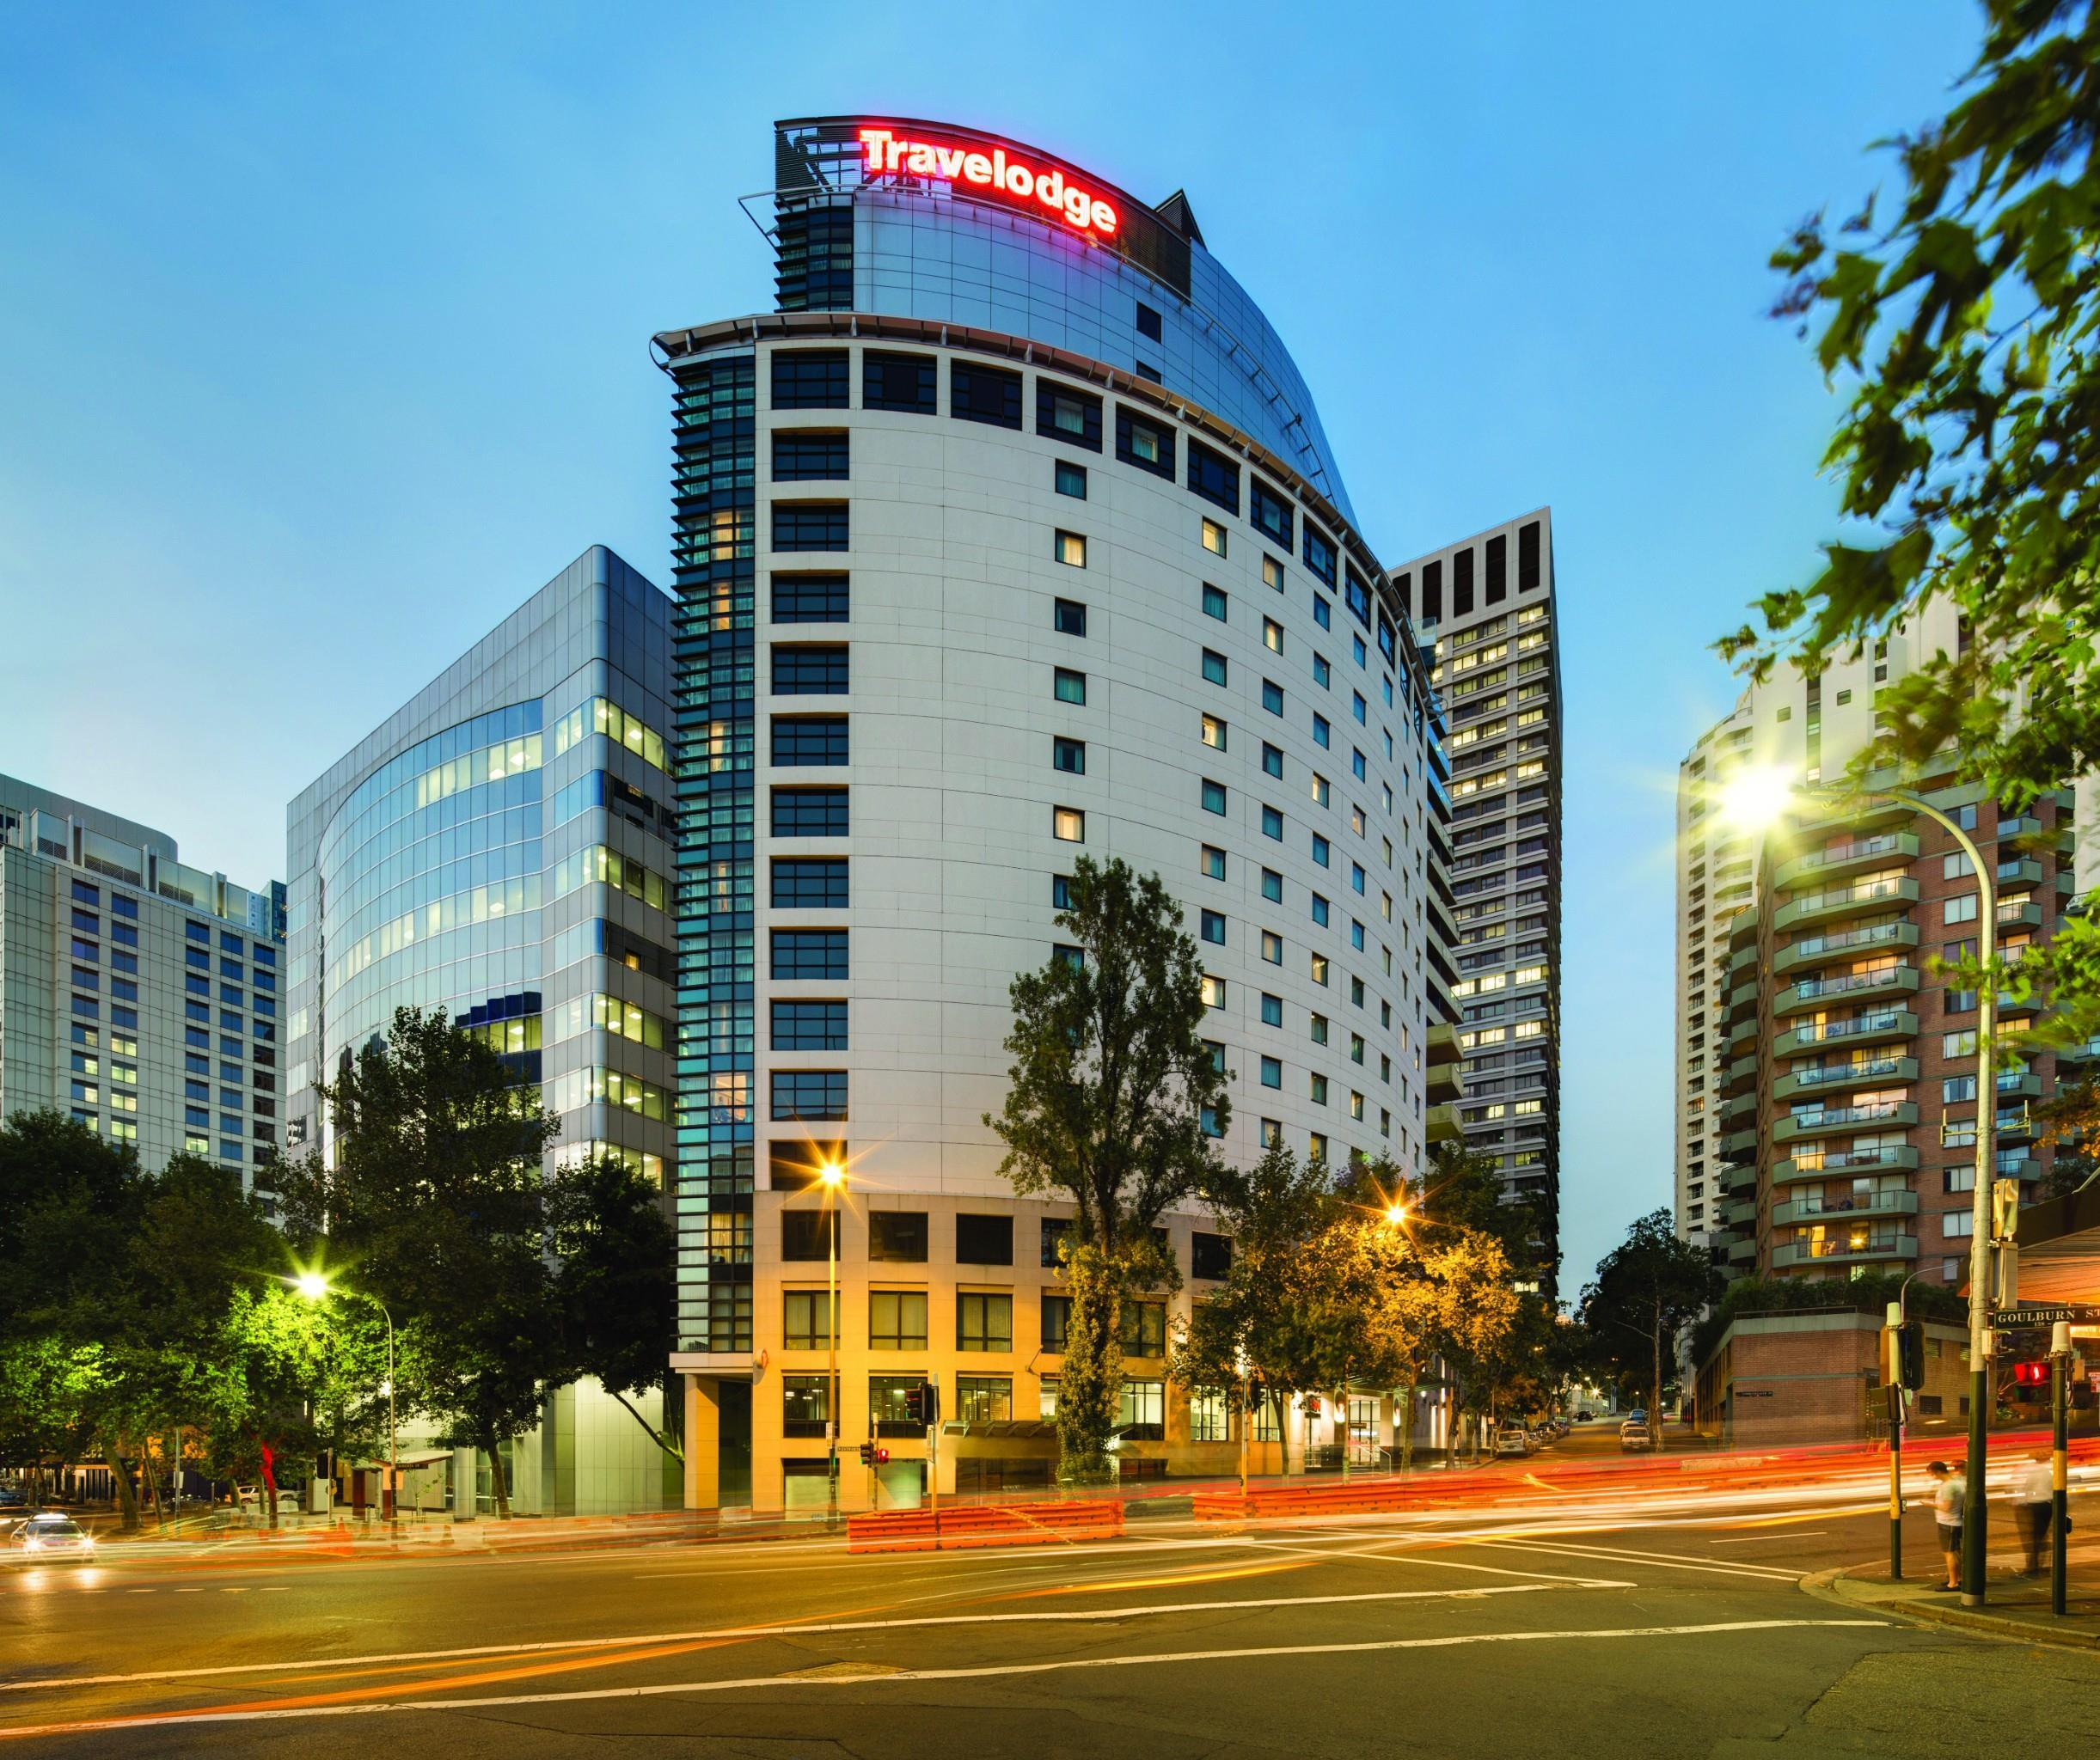 Travelodge Hotel Sydney